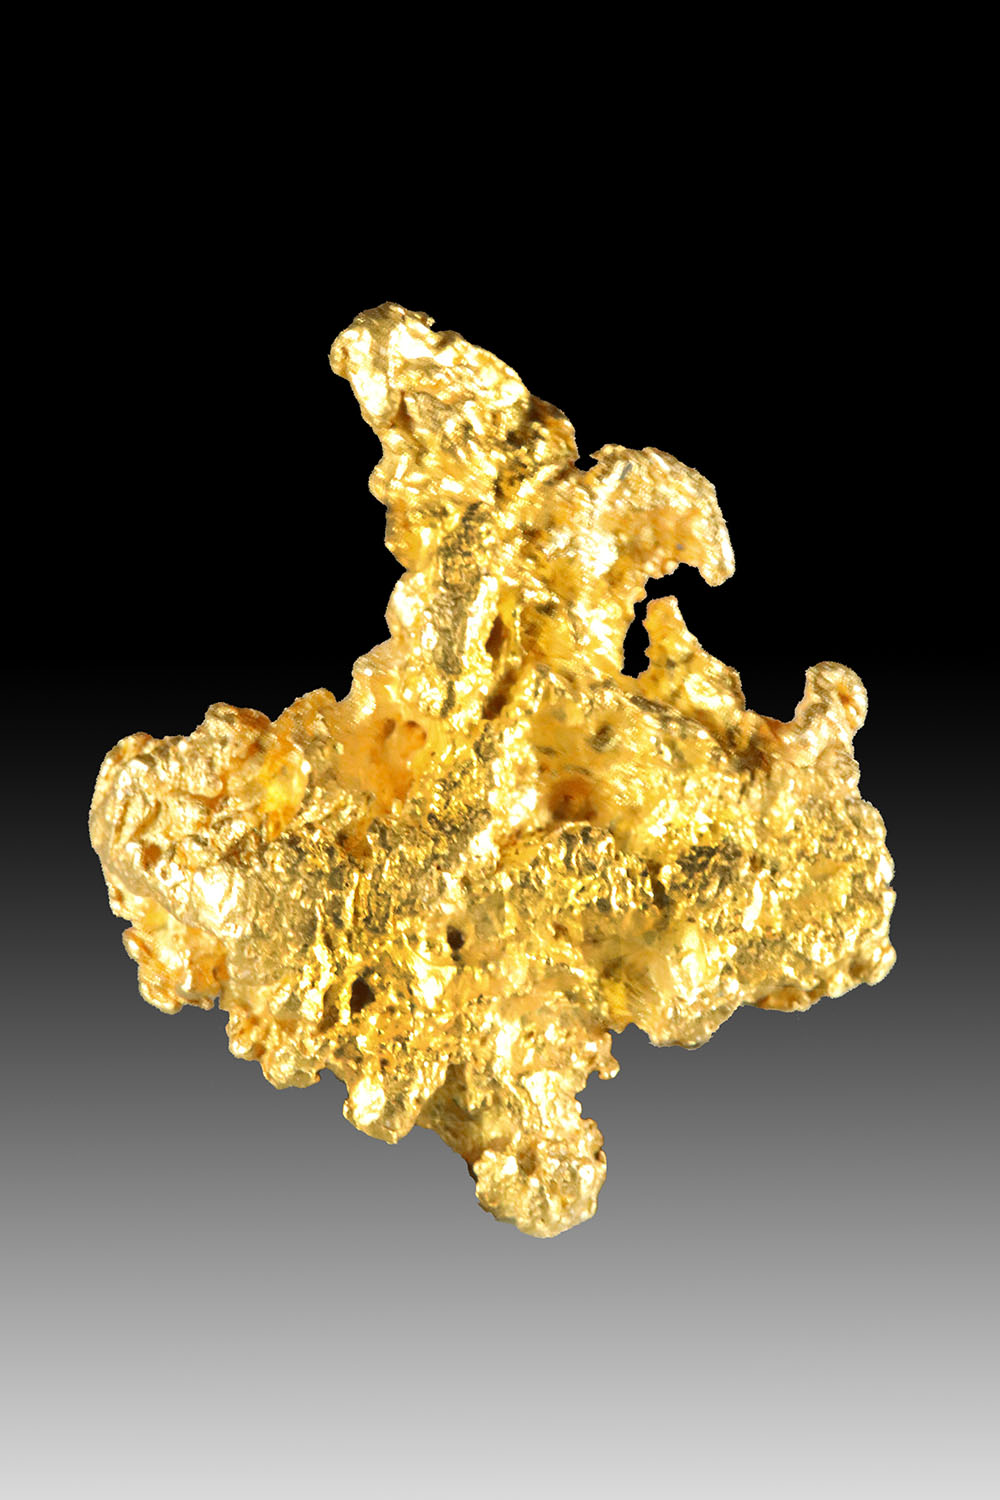 Wonderfully Rich and Textured Jewelry Grade Gold Nugget